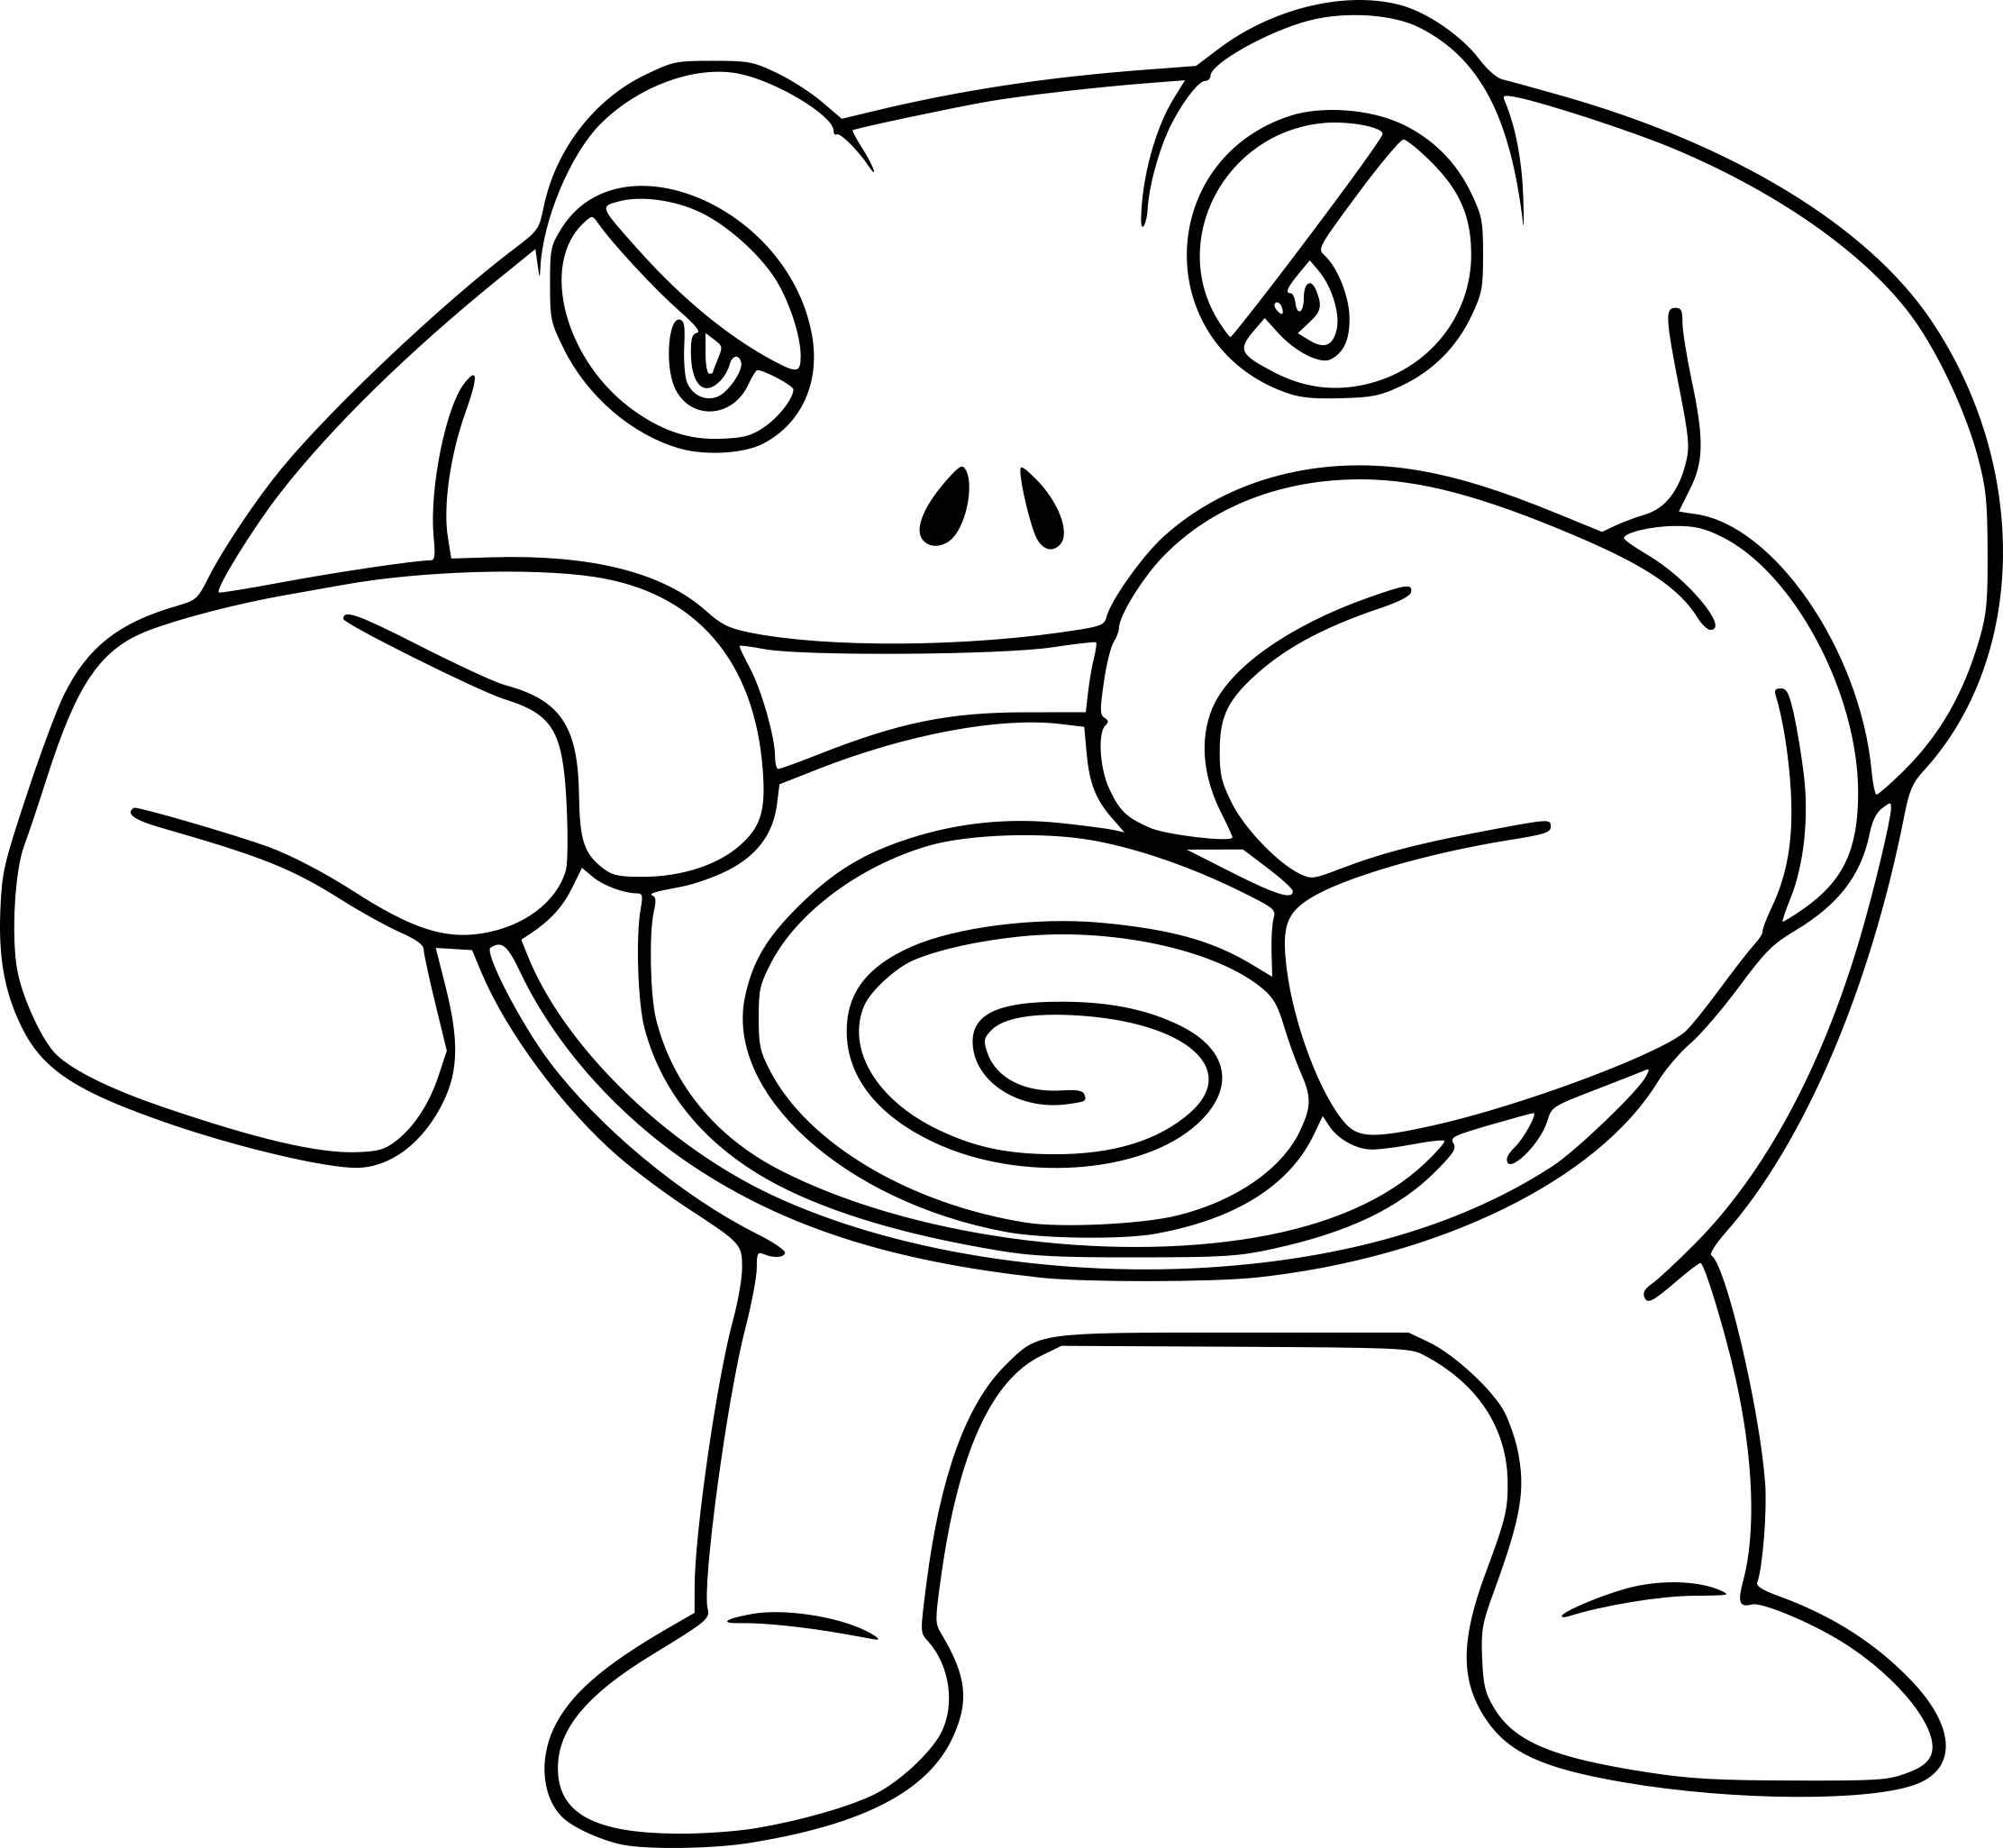 Coloring of pokemon yveltal coloring pages for Pokemon yveltal coloring pages